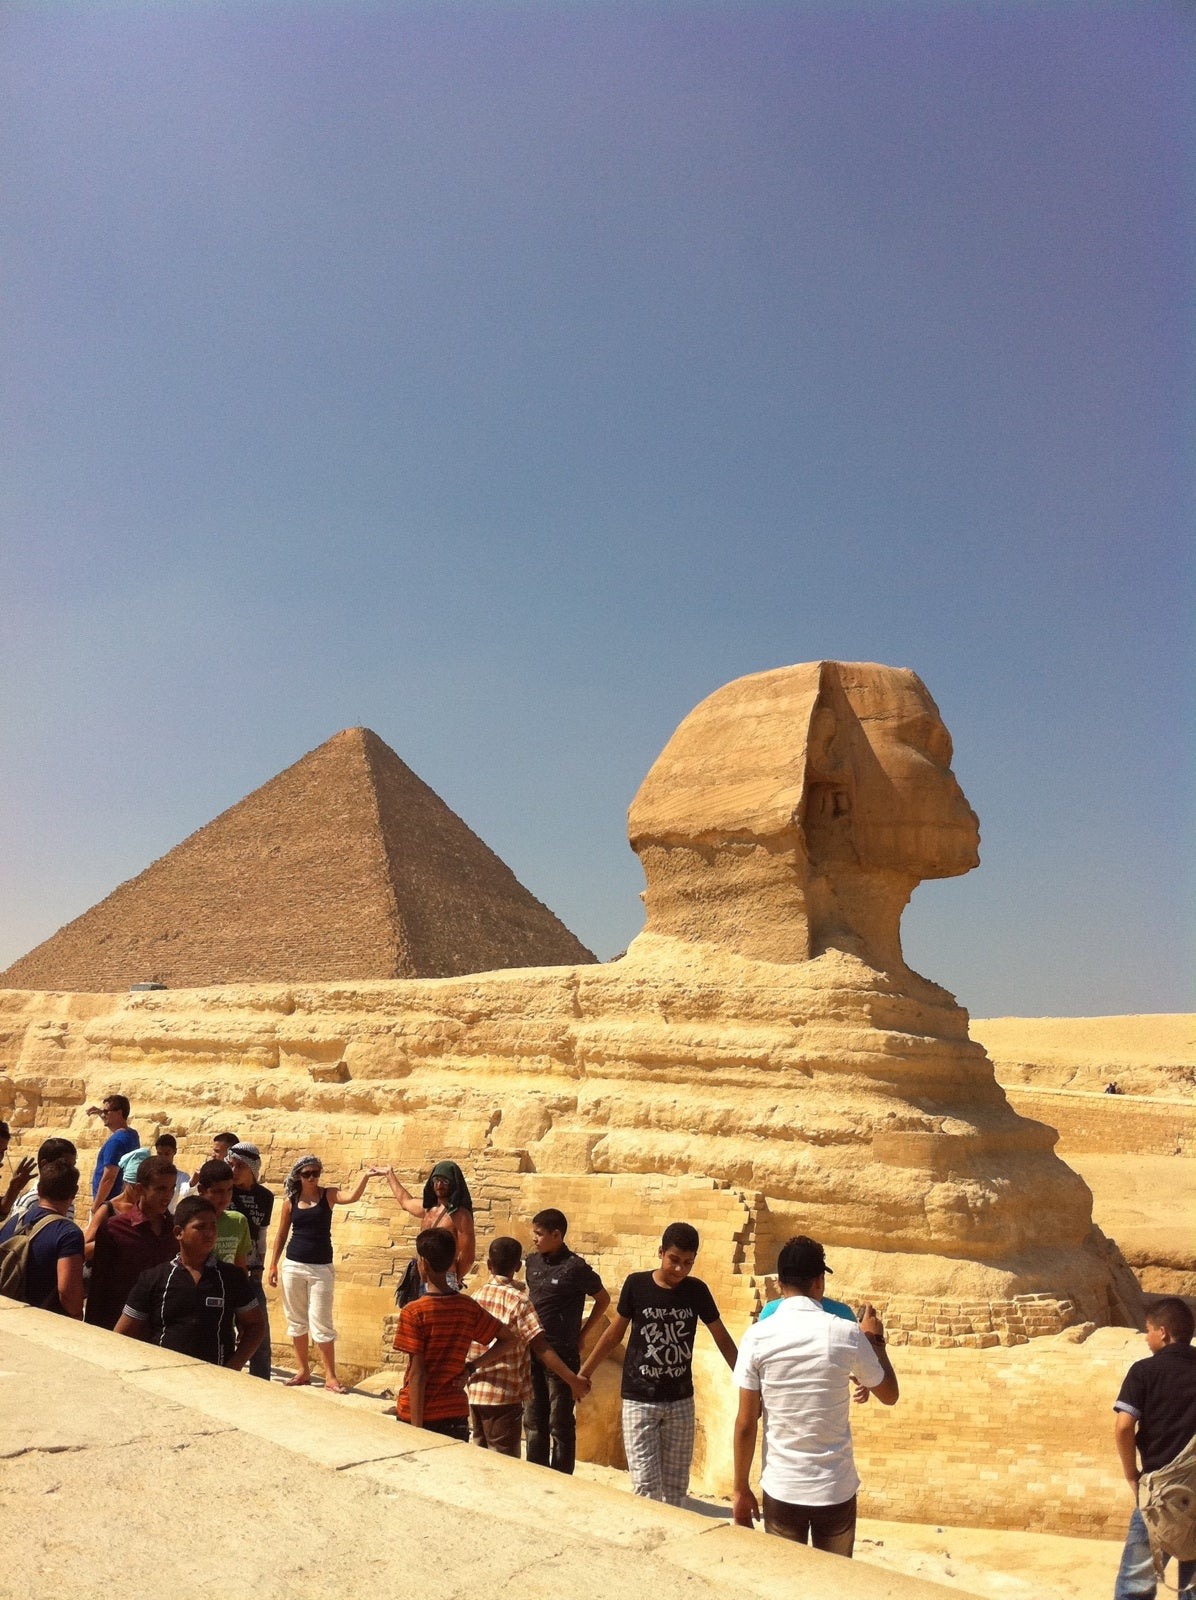 Sphinx of Giza